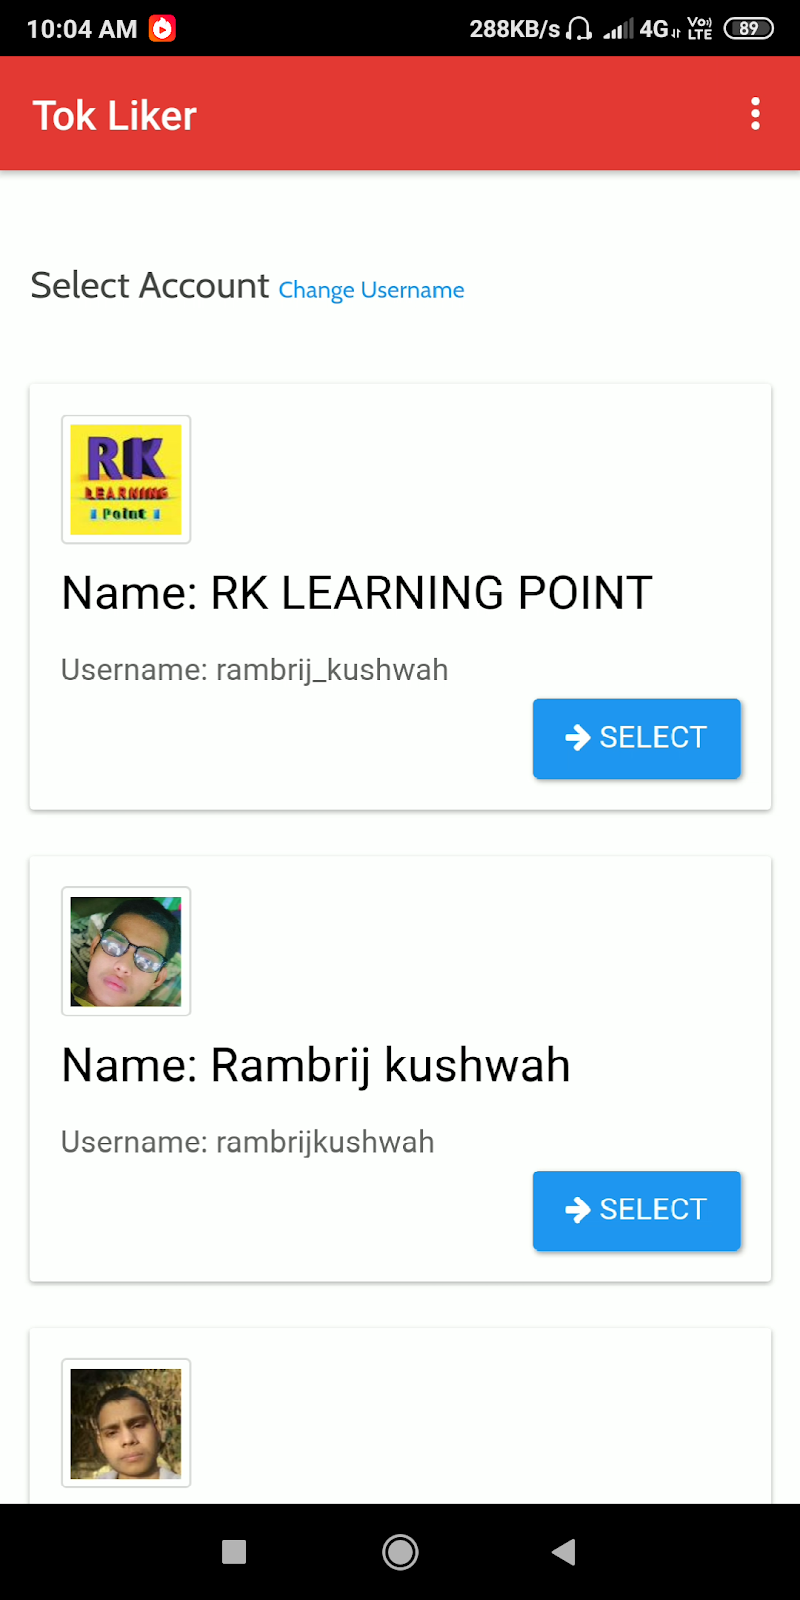 How to increase real comments on Tik Tok videos  - Rk learning point